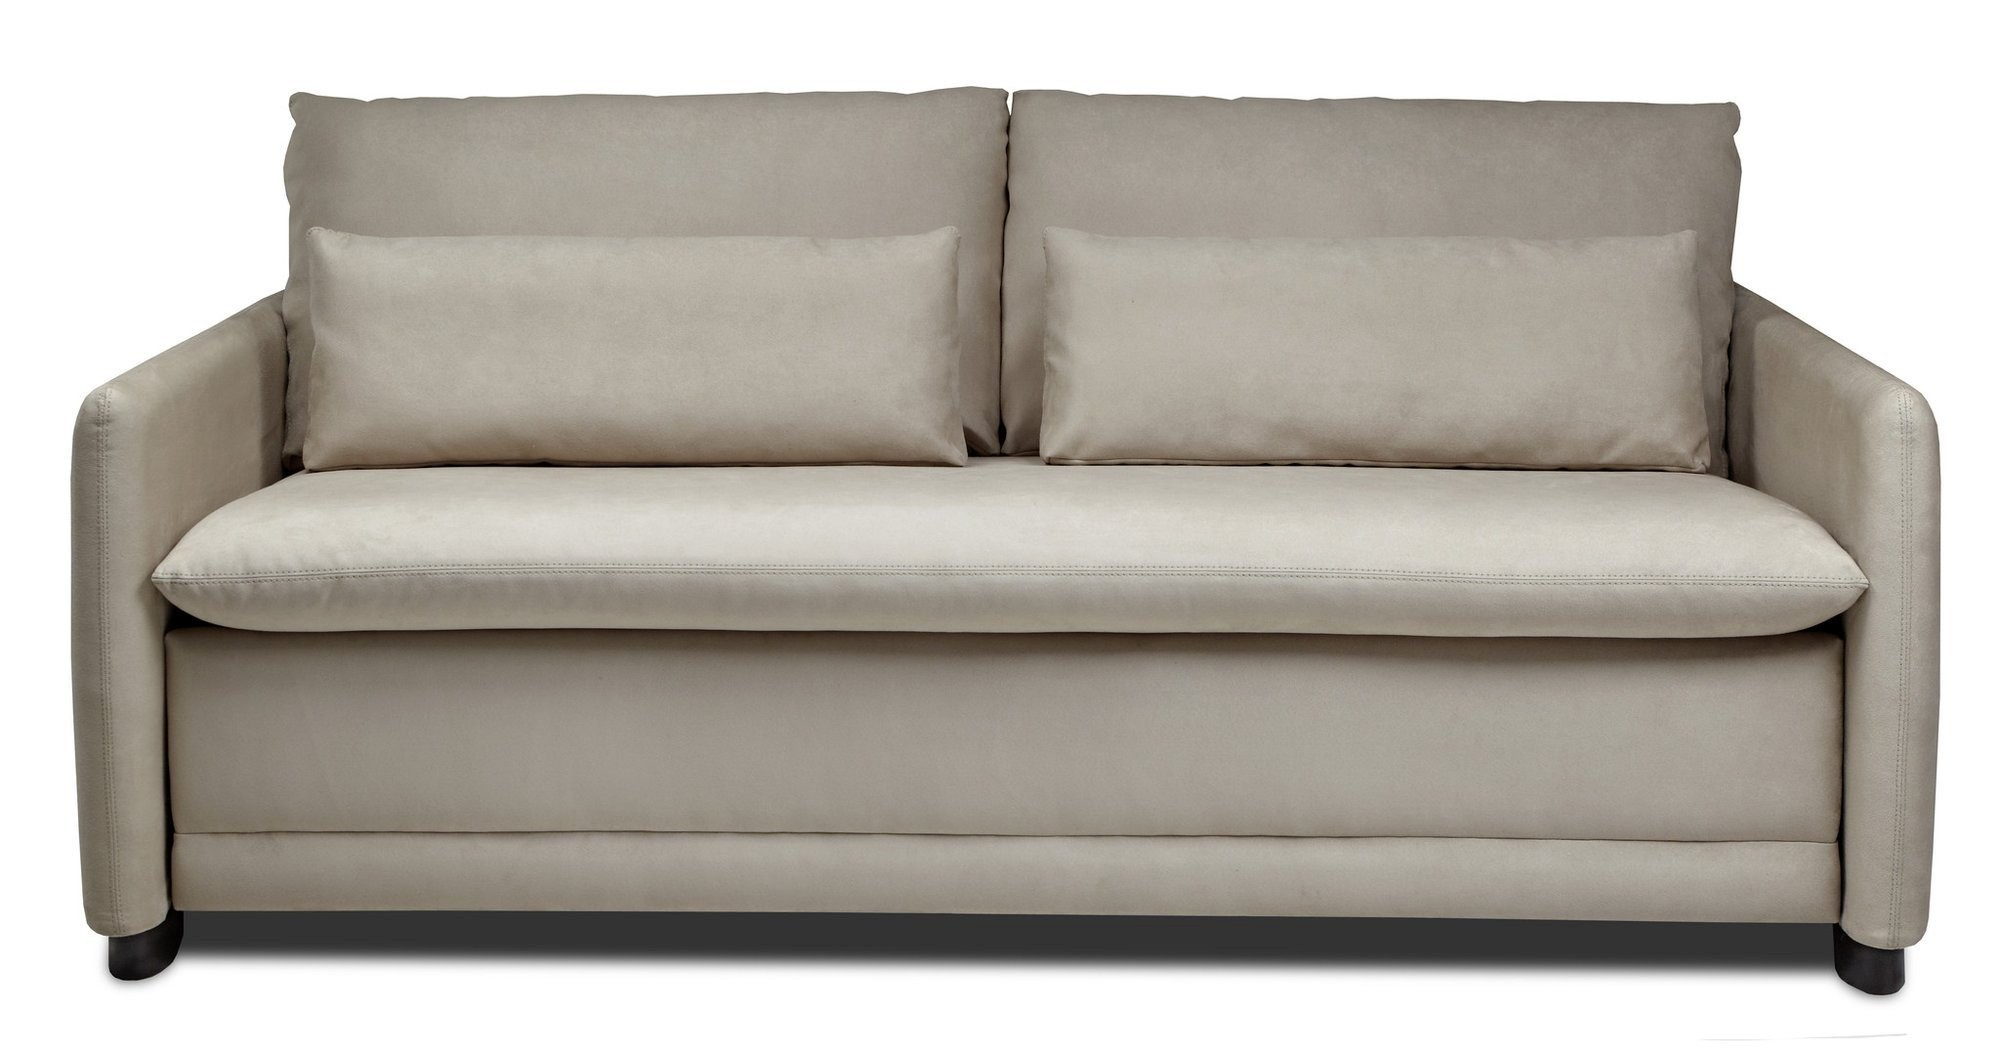 Cb2 sofa Bed Beautiful Tempurpedic sofa Bed Cb2 sofa Bed Concept